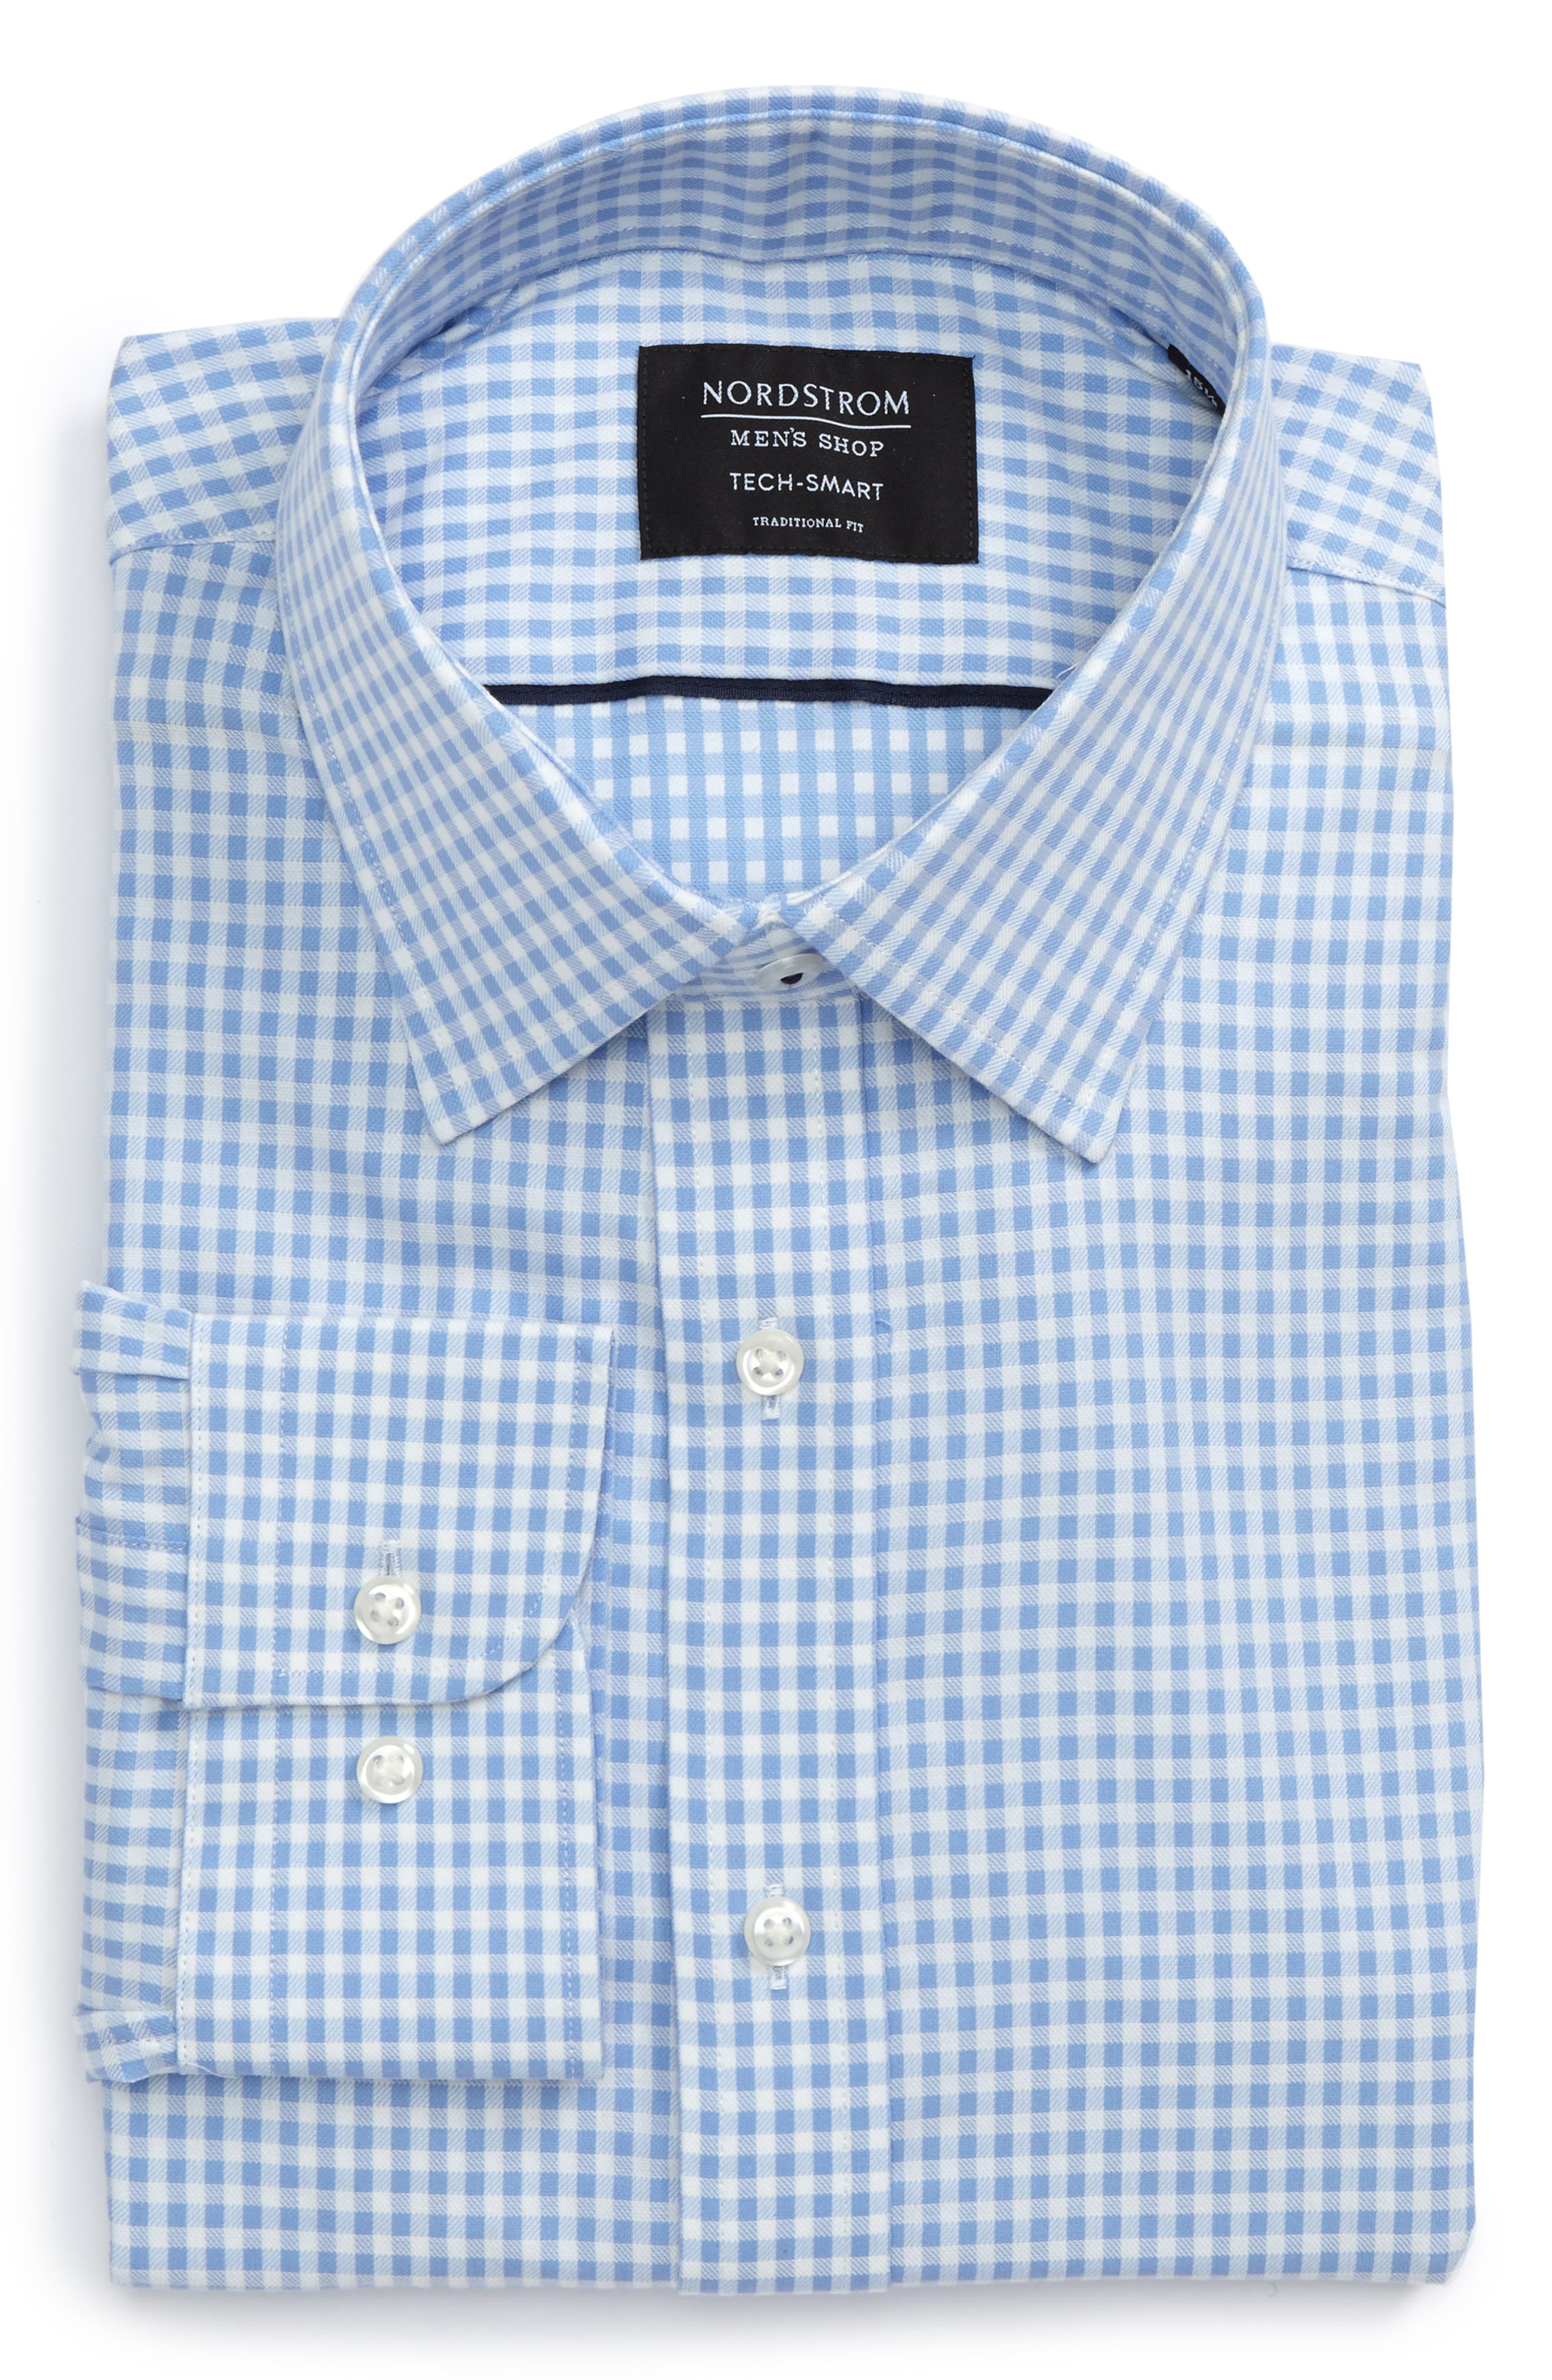 Main Image - Nordstrom Men's Shop Tech-Smart Traditional Fit Check Dress Shirt